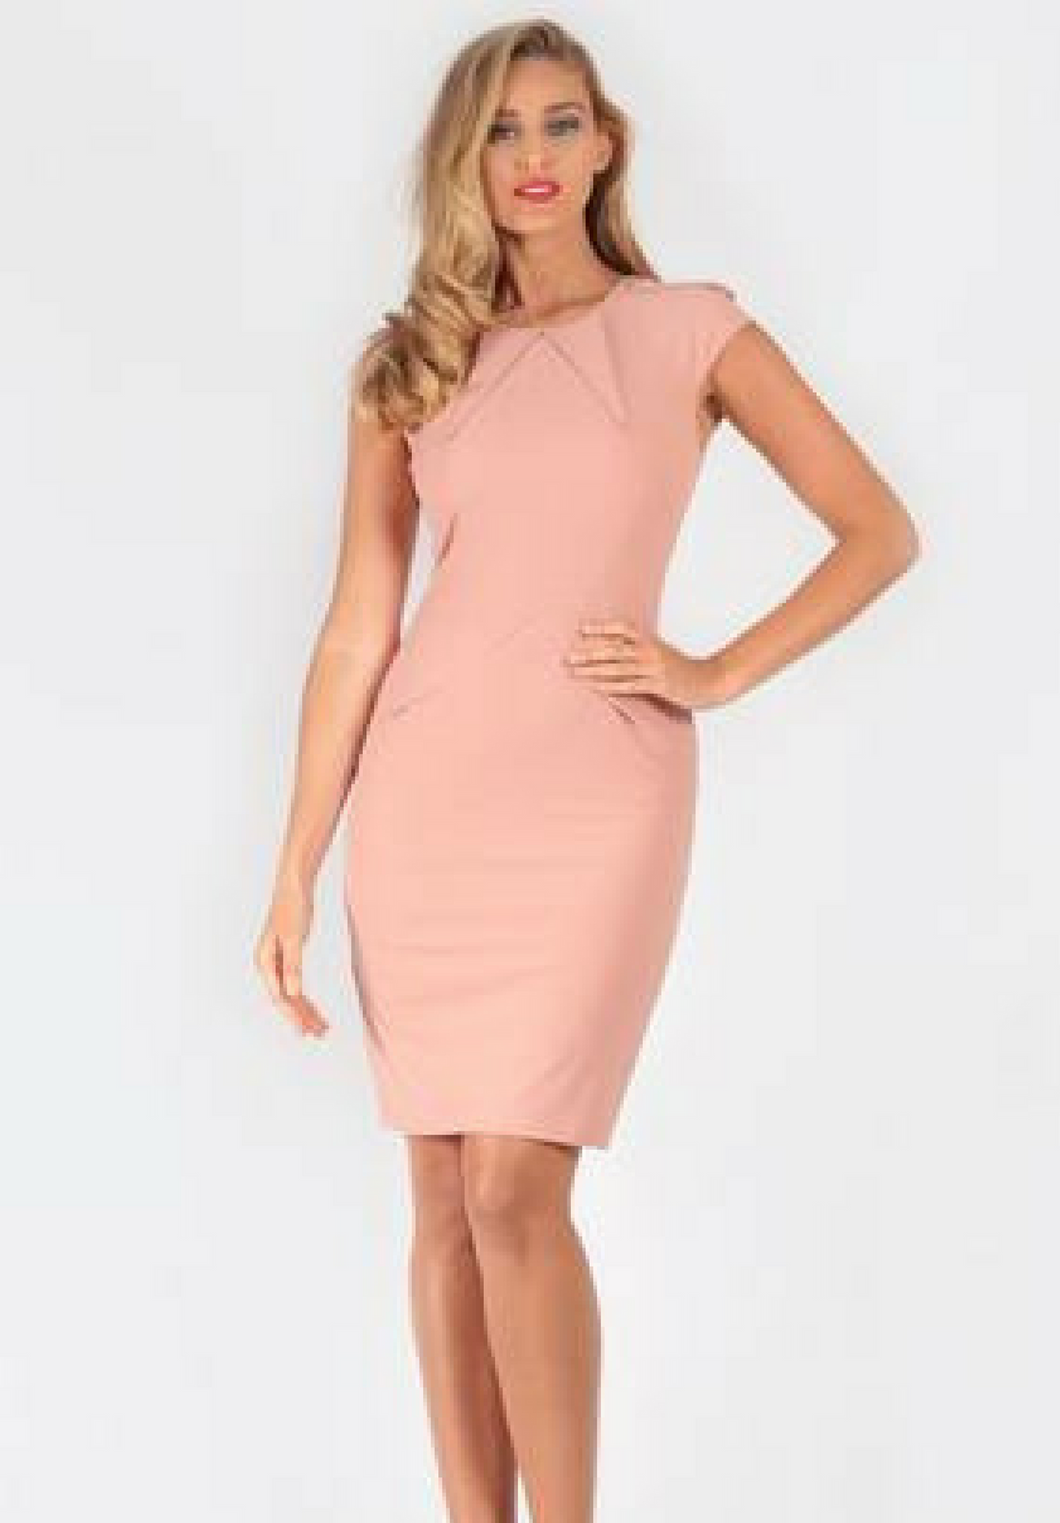 Radios Blush Dress - My Bargains Boutique